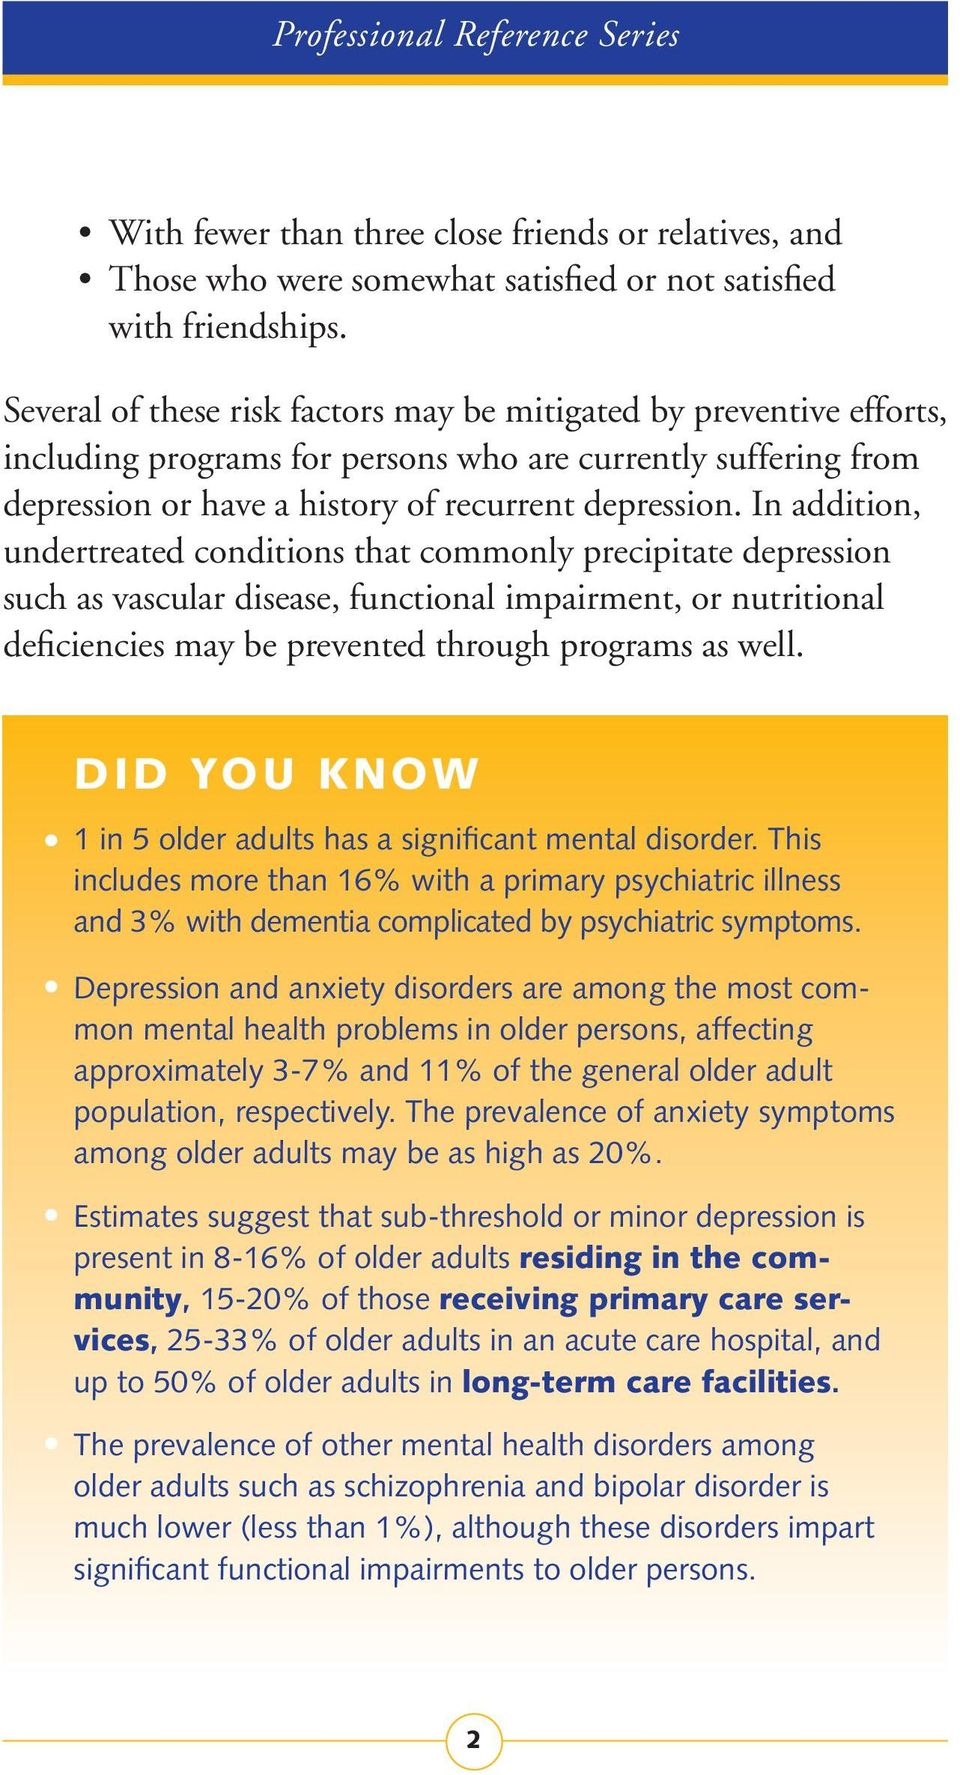 In addition, undertreated conditions that commonly precipitate depression such as vascular disease, functional impairment, or nutritional deficiencies may be prevented through programs as well.